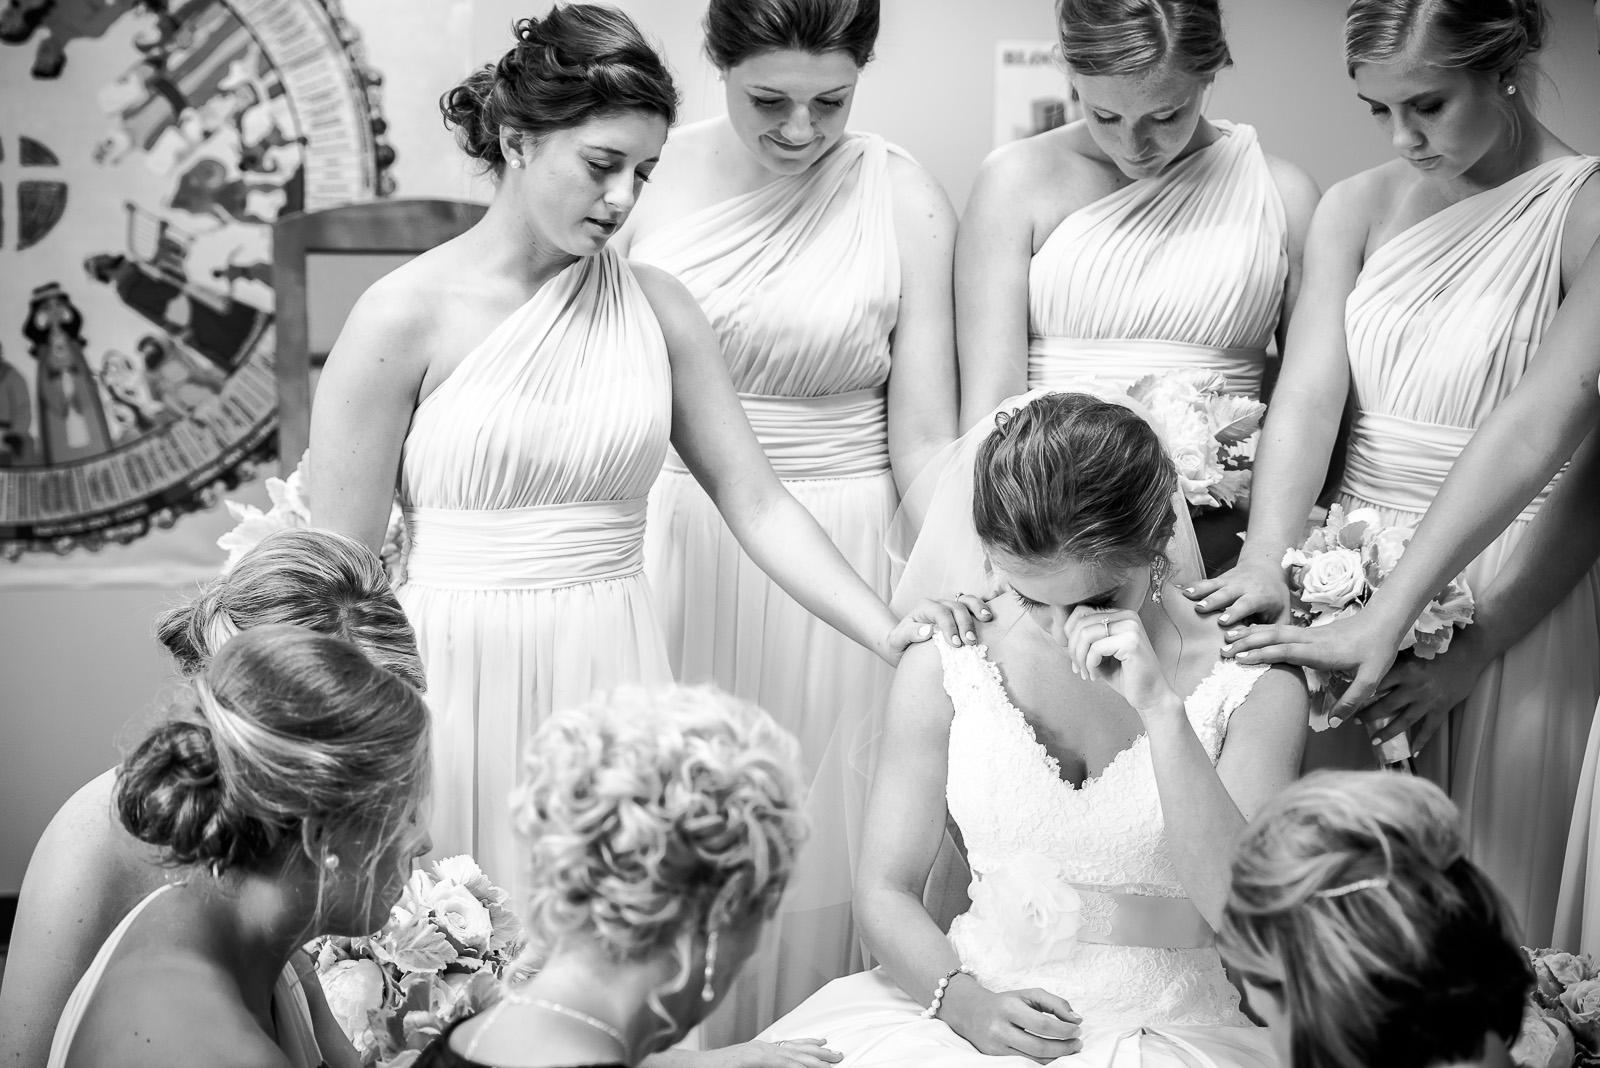 Eric_and_Christy_Photography_Blog_2016_Best_Wedding_Moments-2